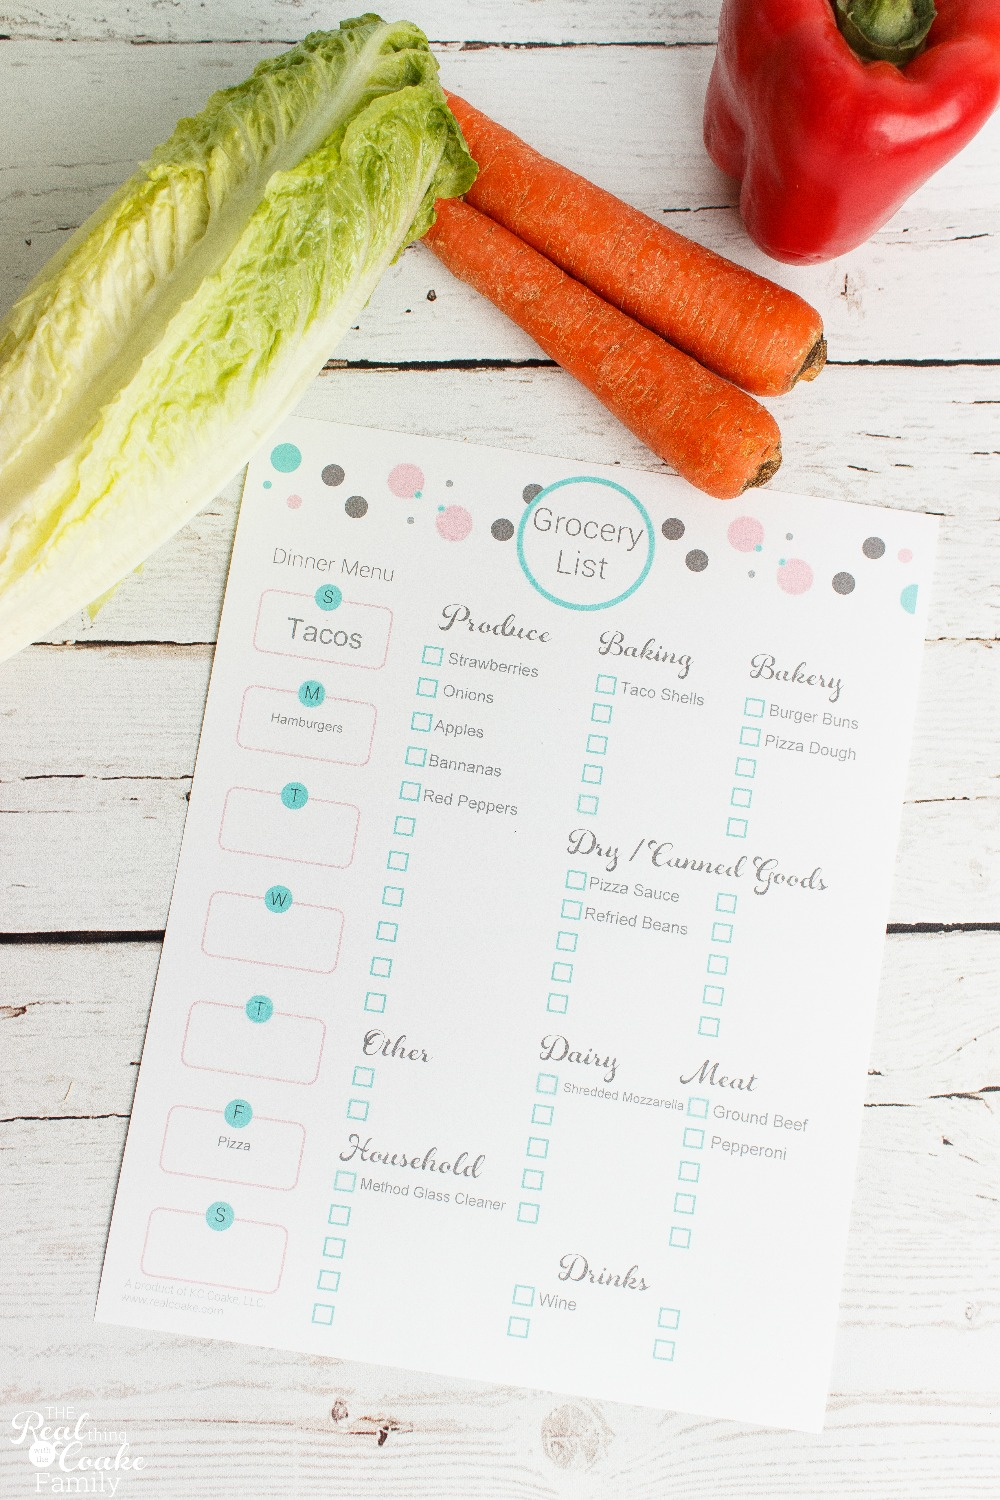 Organized Grocery List with Meal Planning